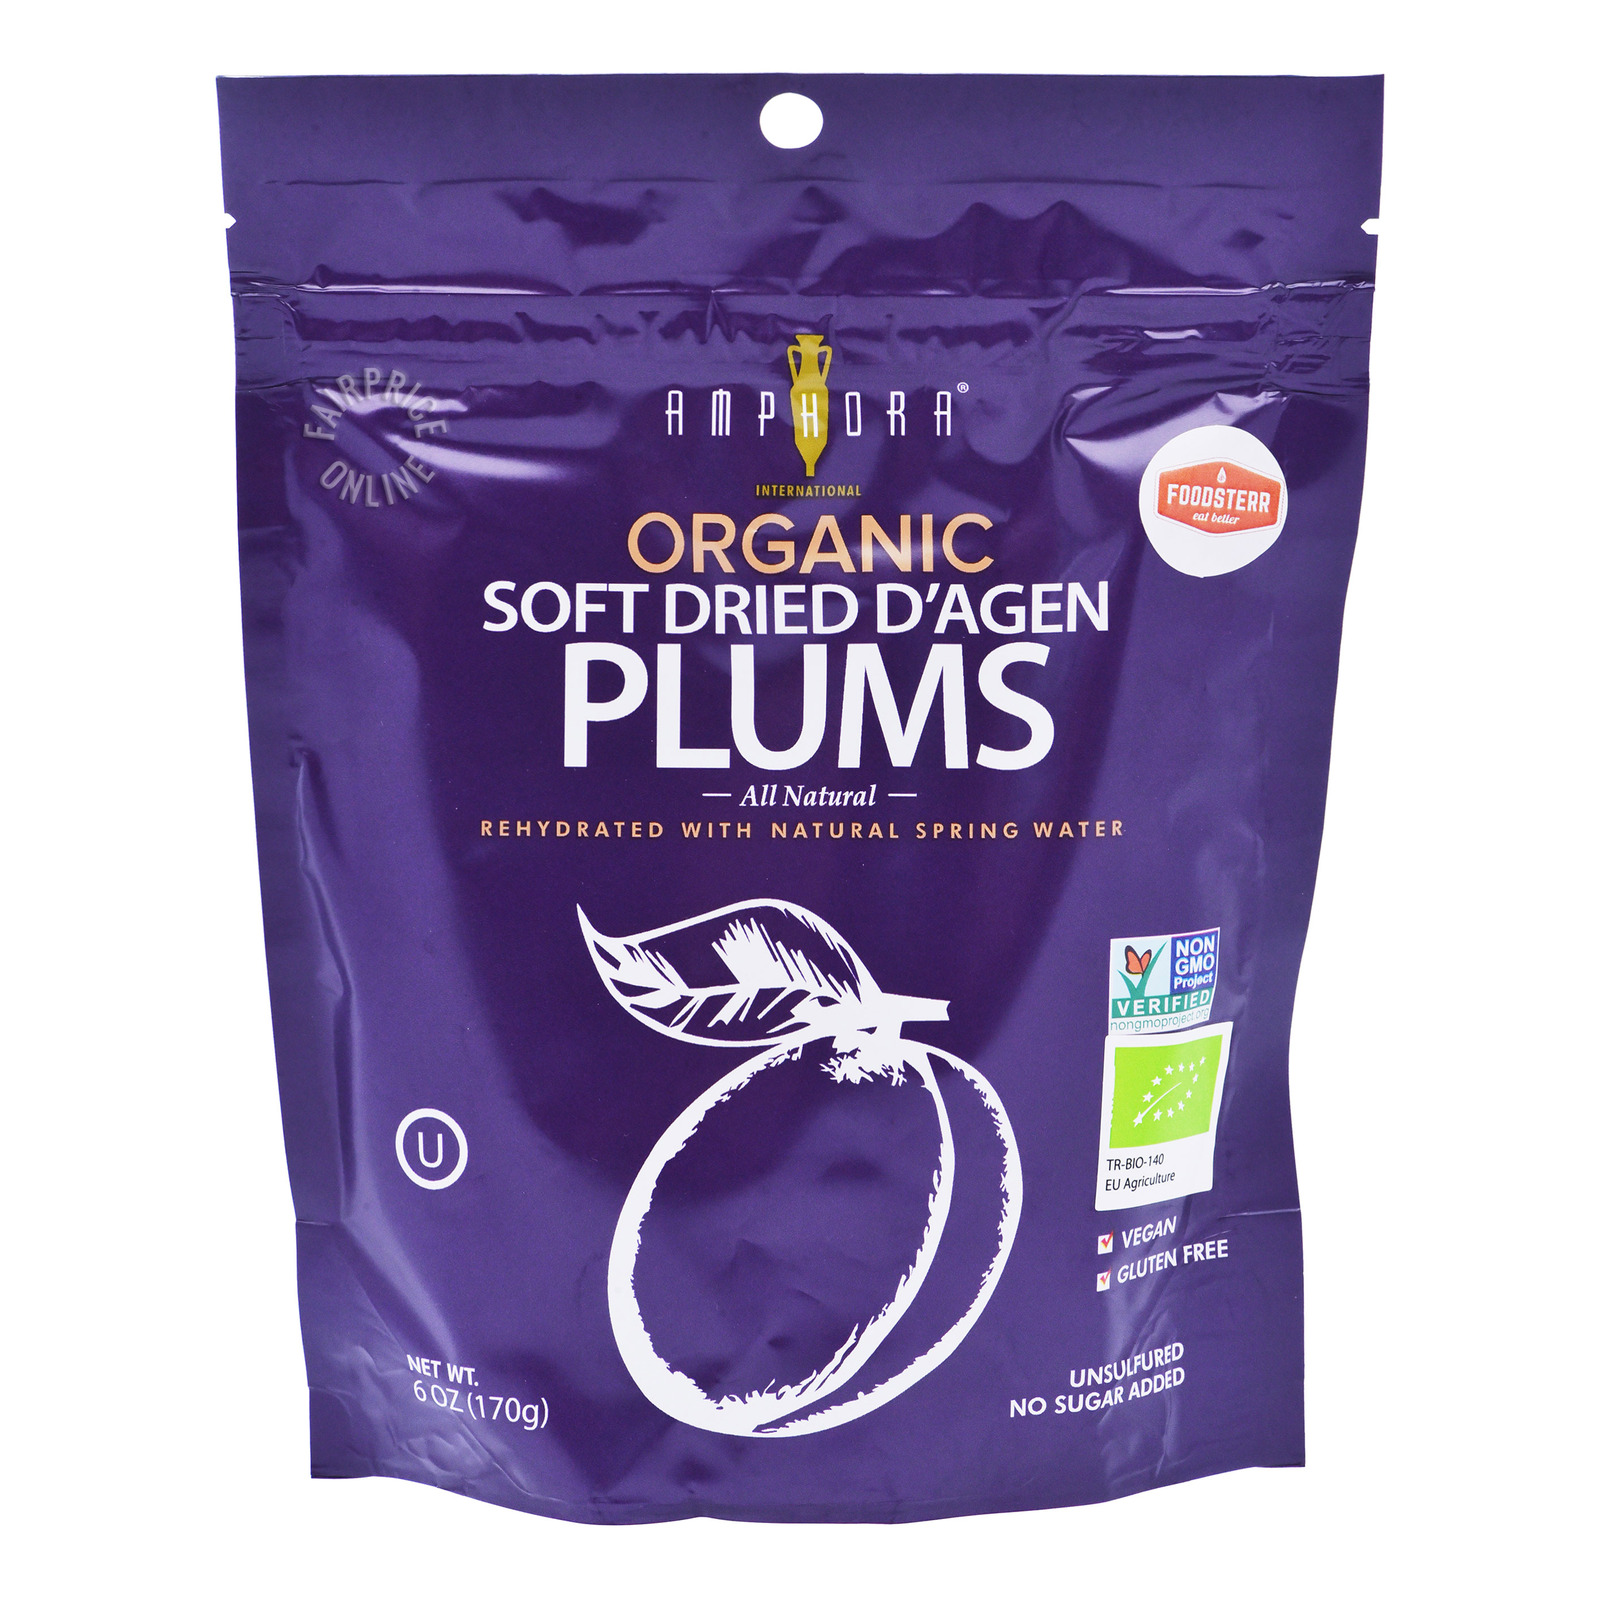 Amphora Organic Soft Dried D'Agen Plums